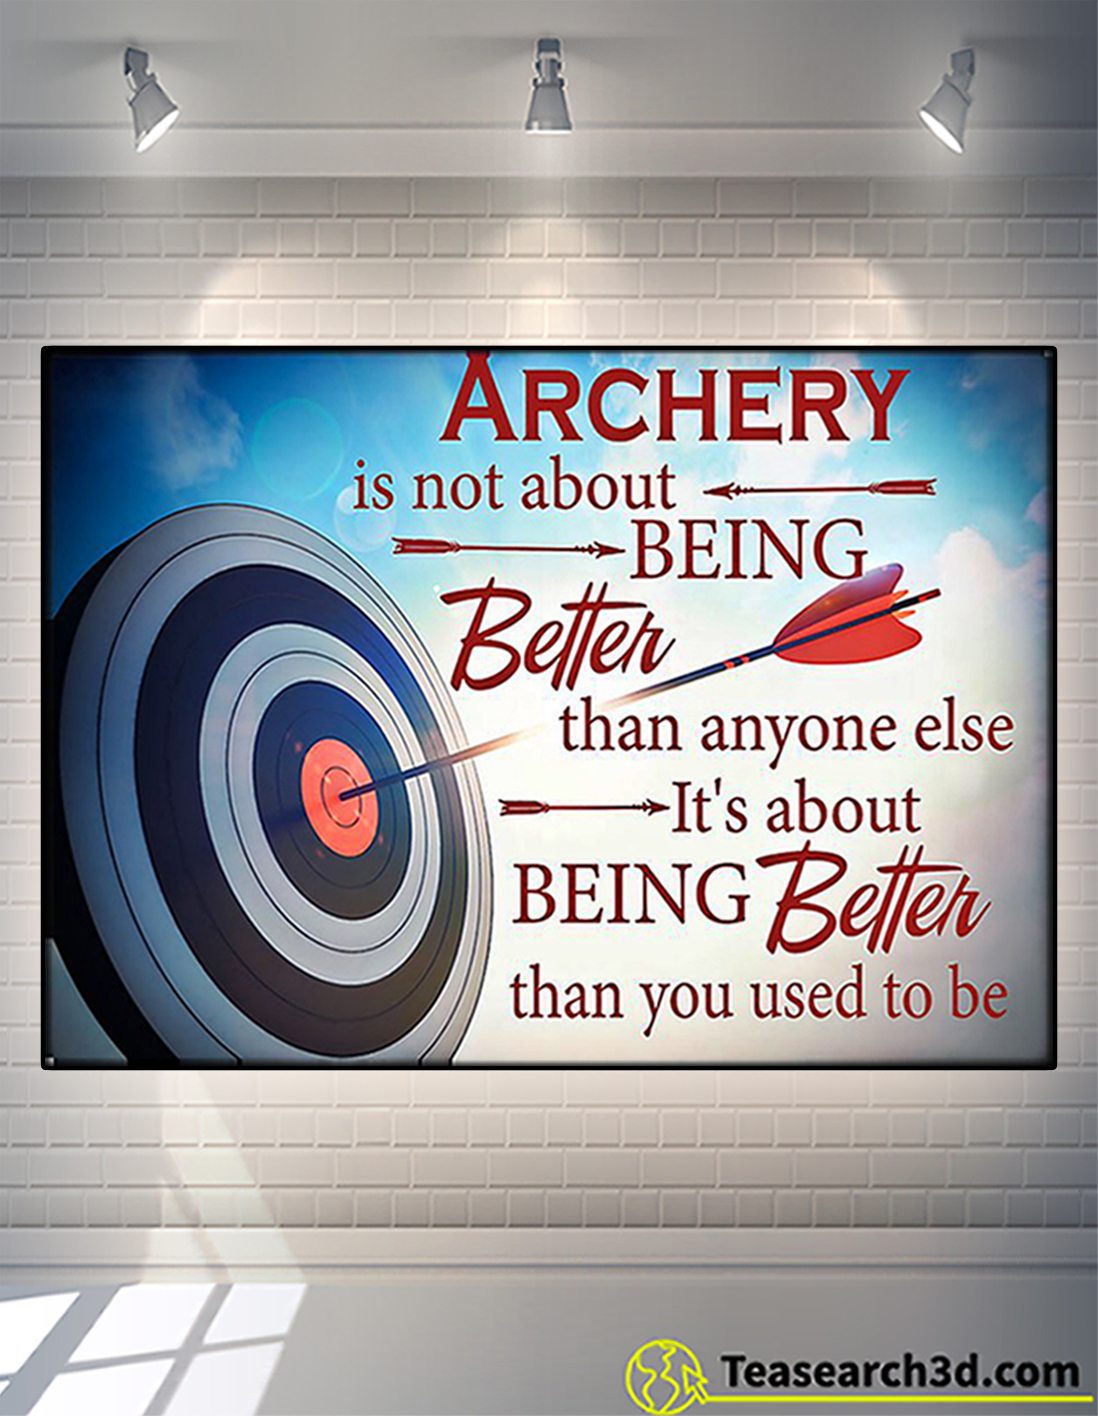 Archery is not about being better than anyone else poster A2